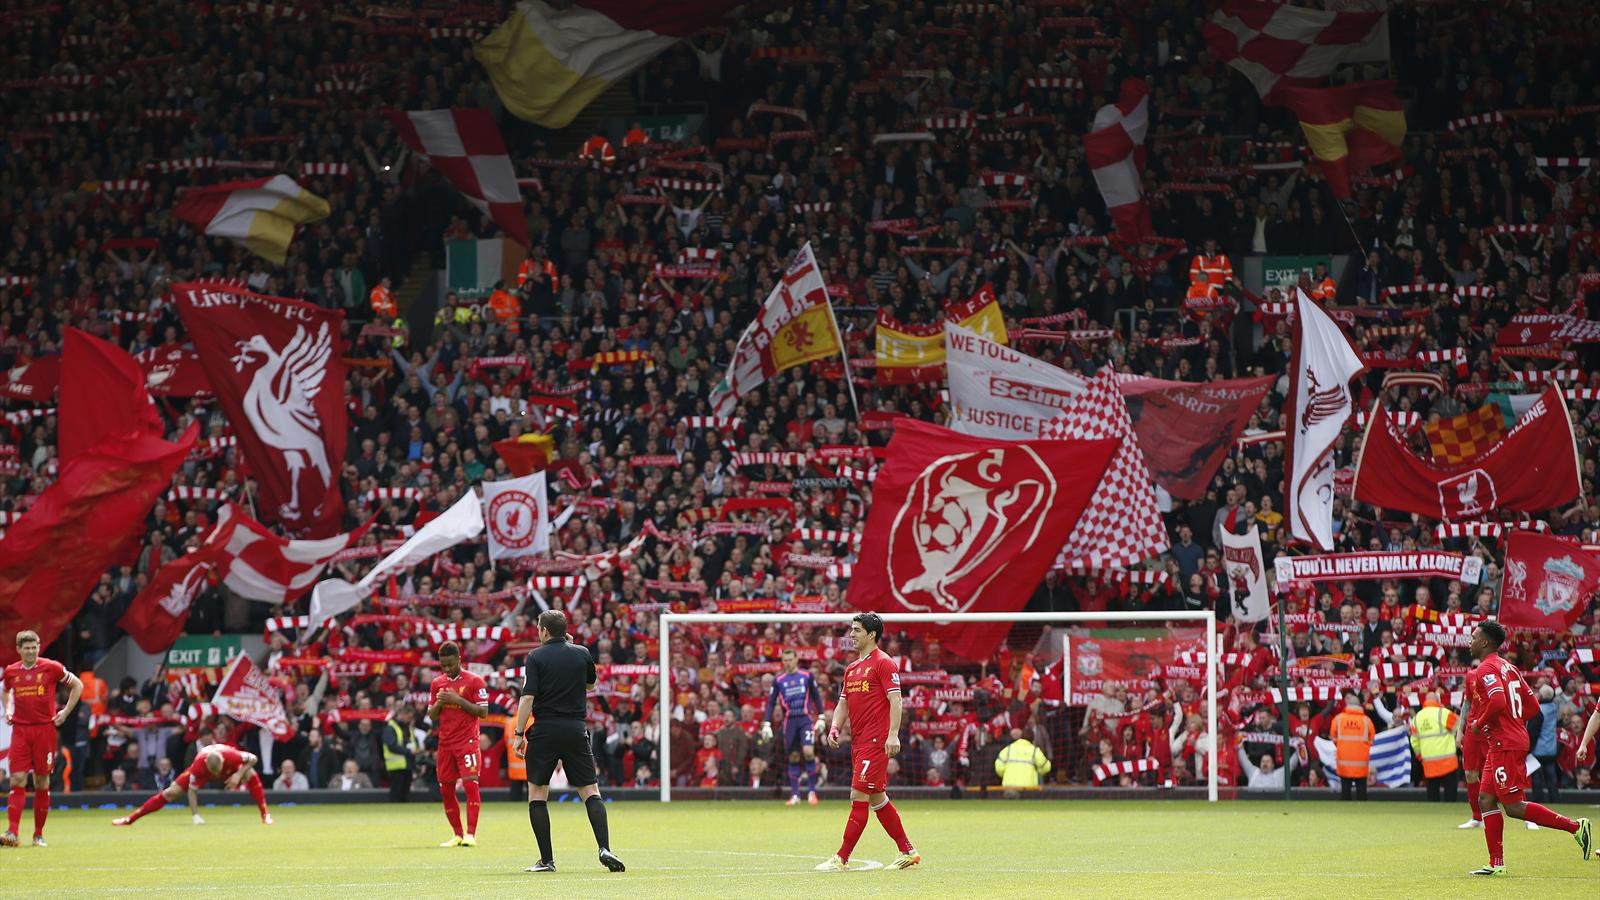 Liverpool fans show their support at the Kop end of Anfield ahead of the English Premier League ...